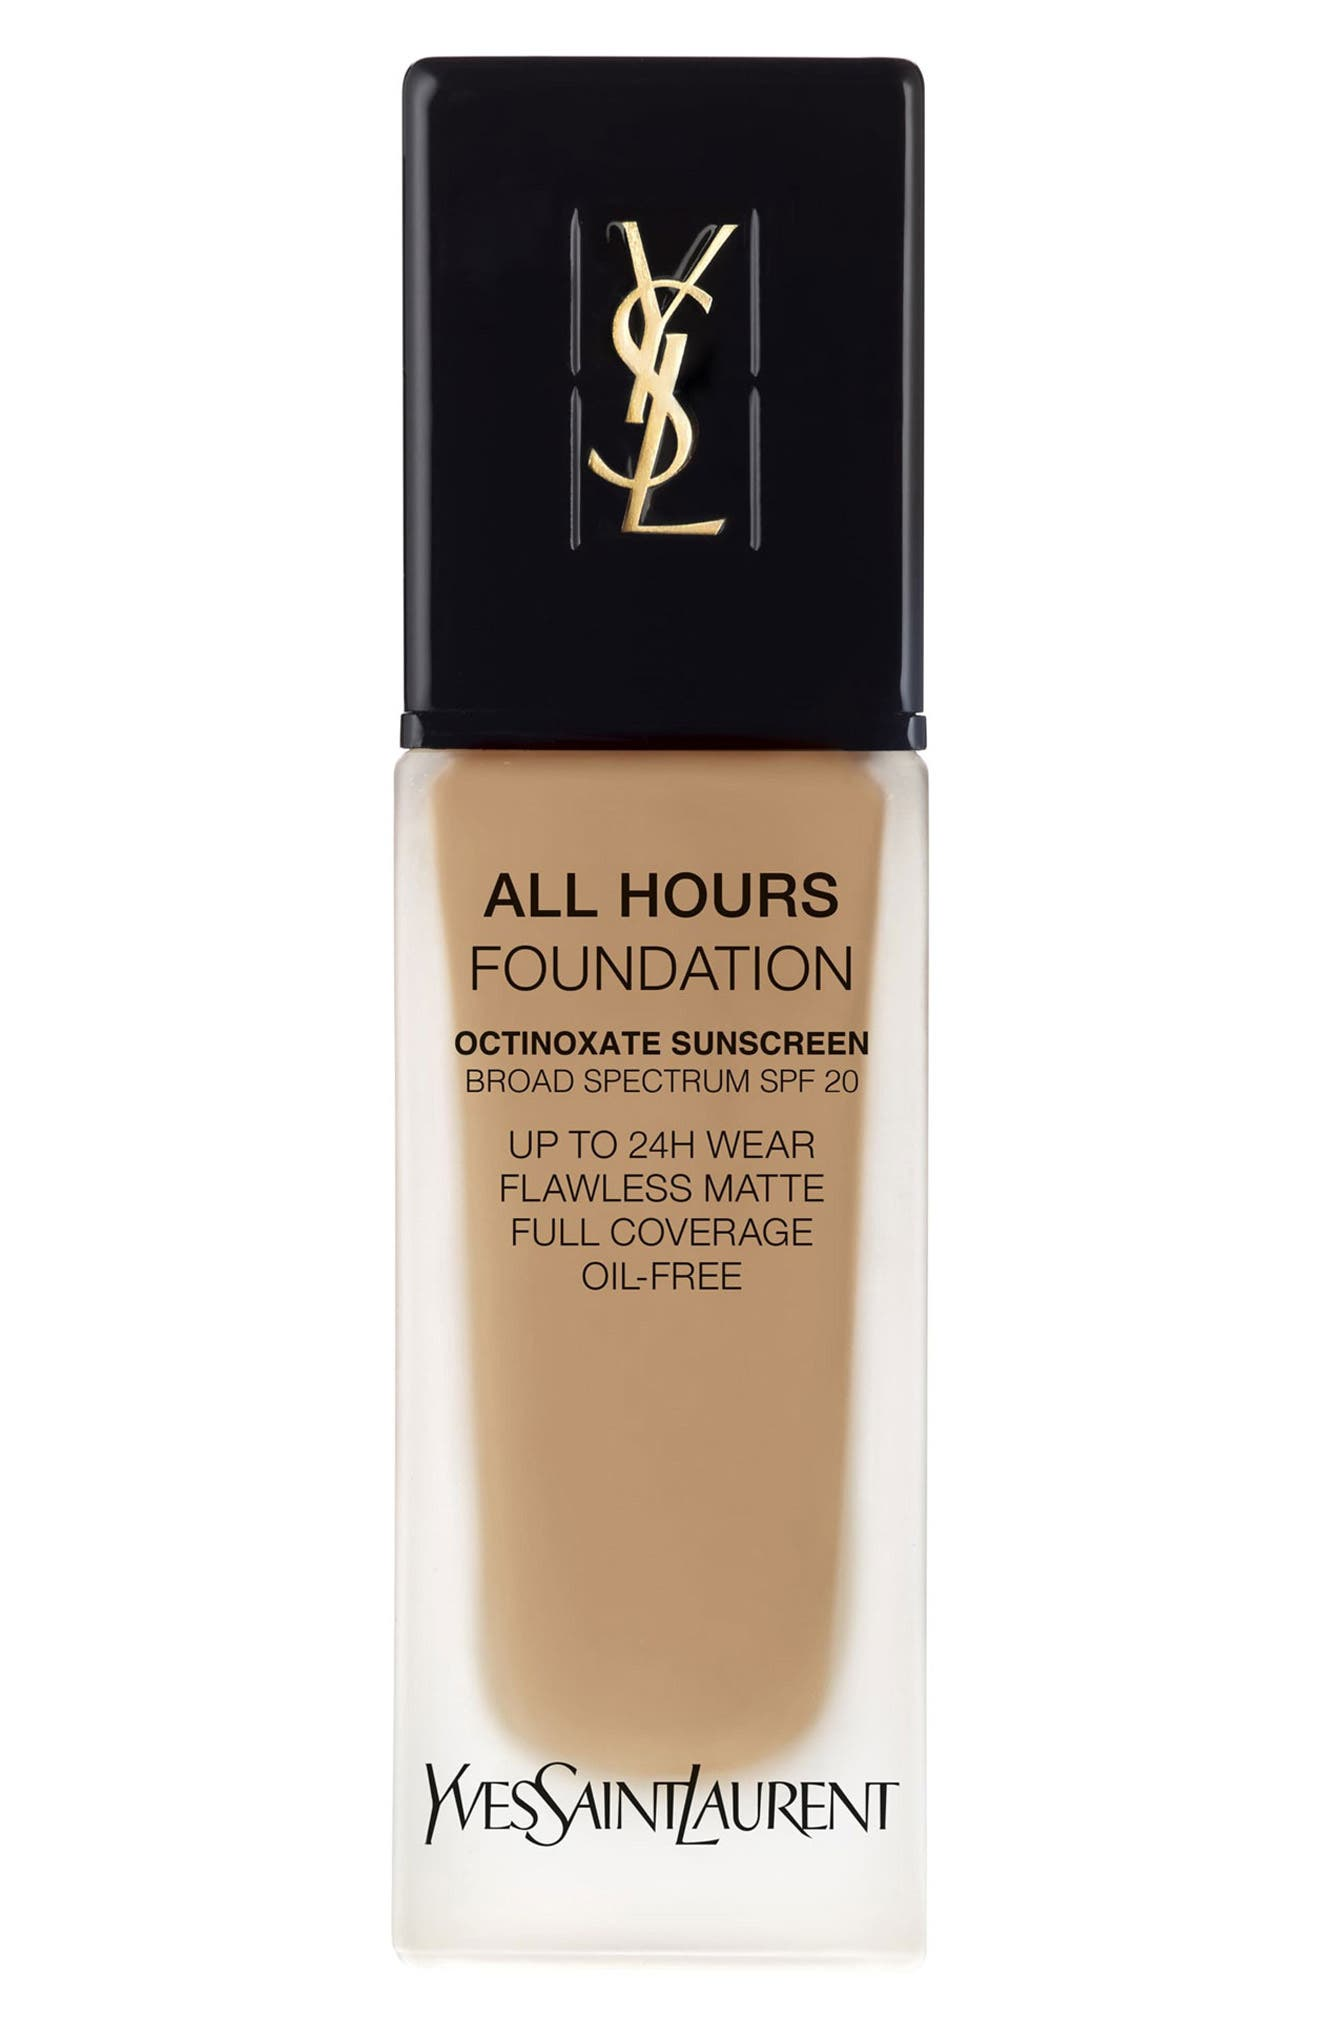 Yves Saint Laurent All Hours Full Coverage Matte Foundation Spf 20 - Bd55 Warm Toffee